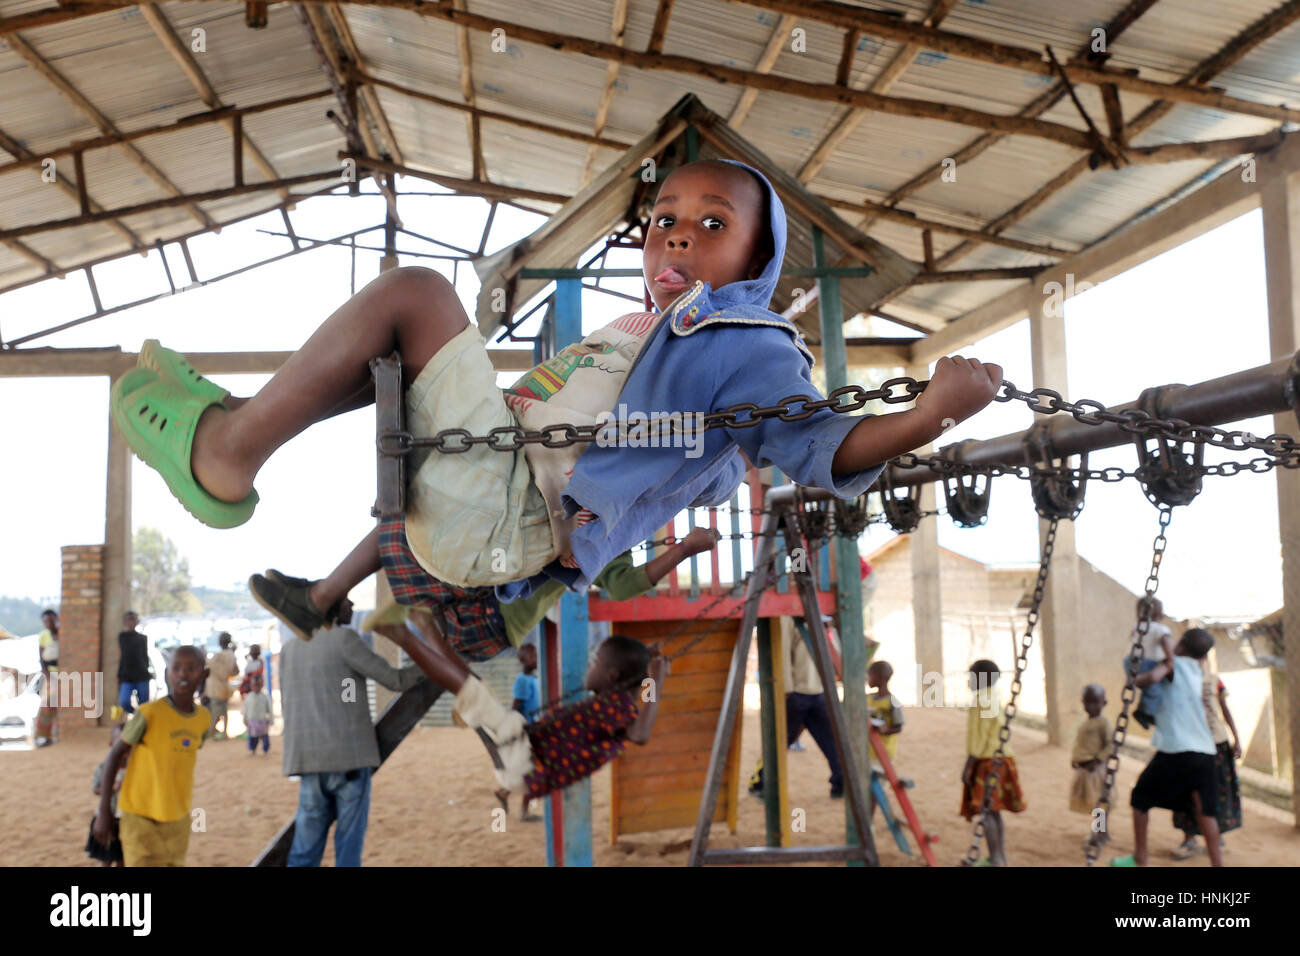 Boy on a swing, children's playground in the refugee camp Kigeme, diocese of Gikongoro, Rwanda, Africa - Stock Image